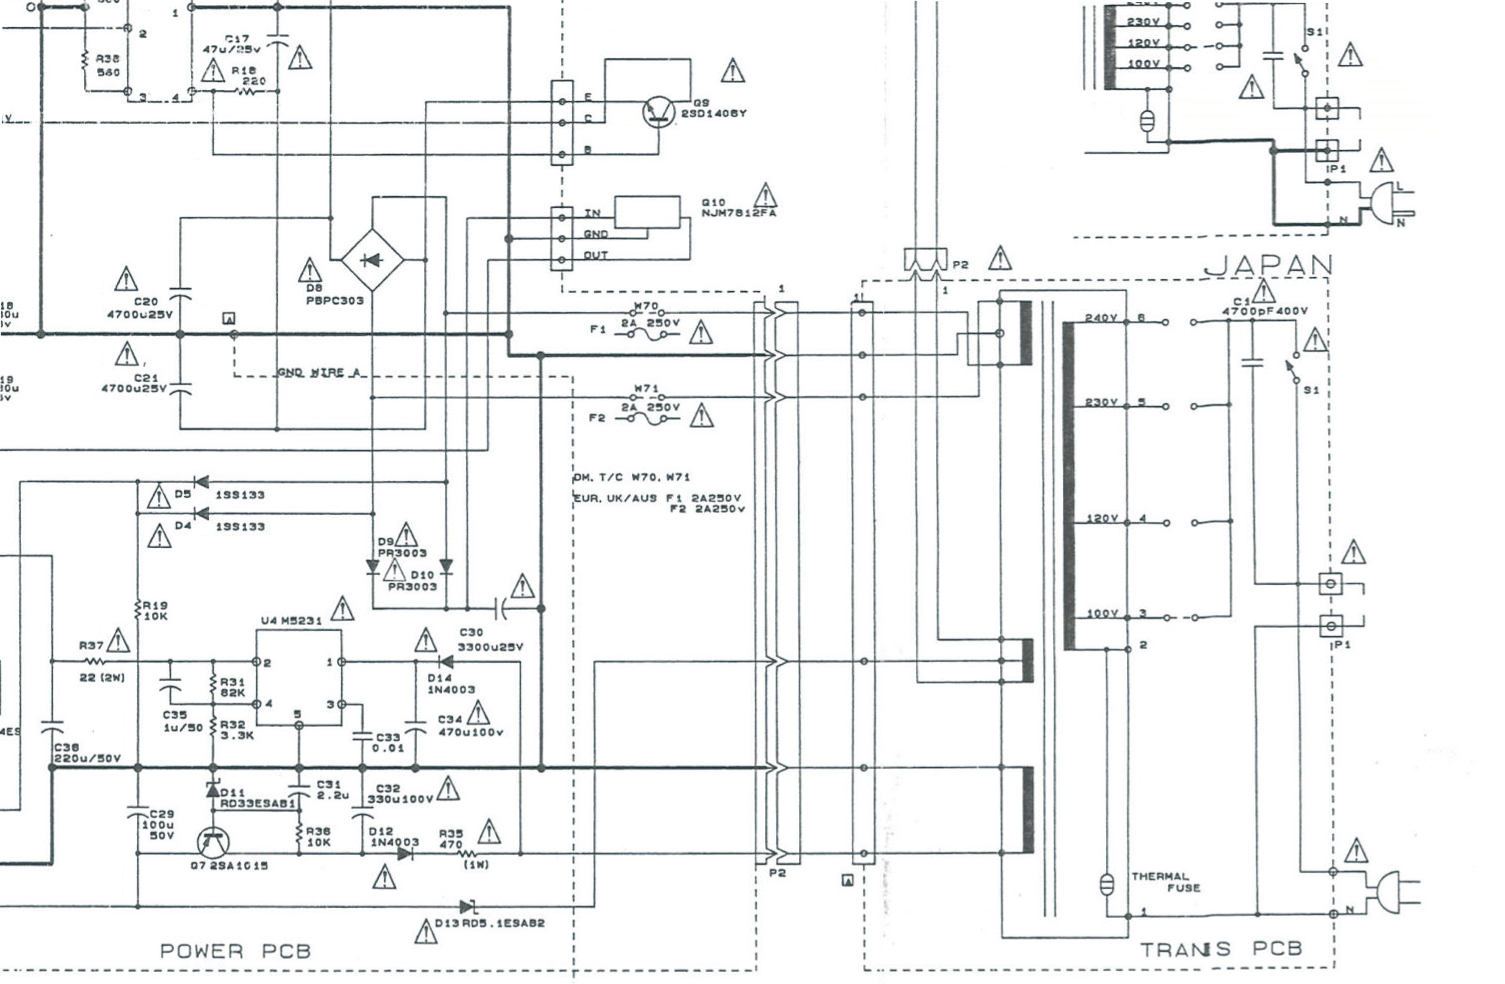 Doz Blog August 2018 Pickit 3 Circuit Diagram A Quick Look At The Shows Theres Thermal Fuse In Primary I May Be Able To Pick It Apart And Replace But Prove